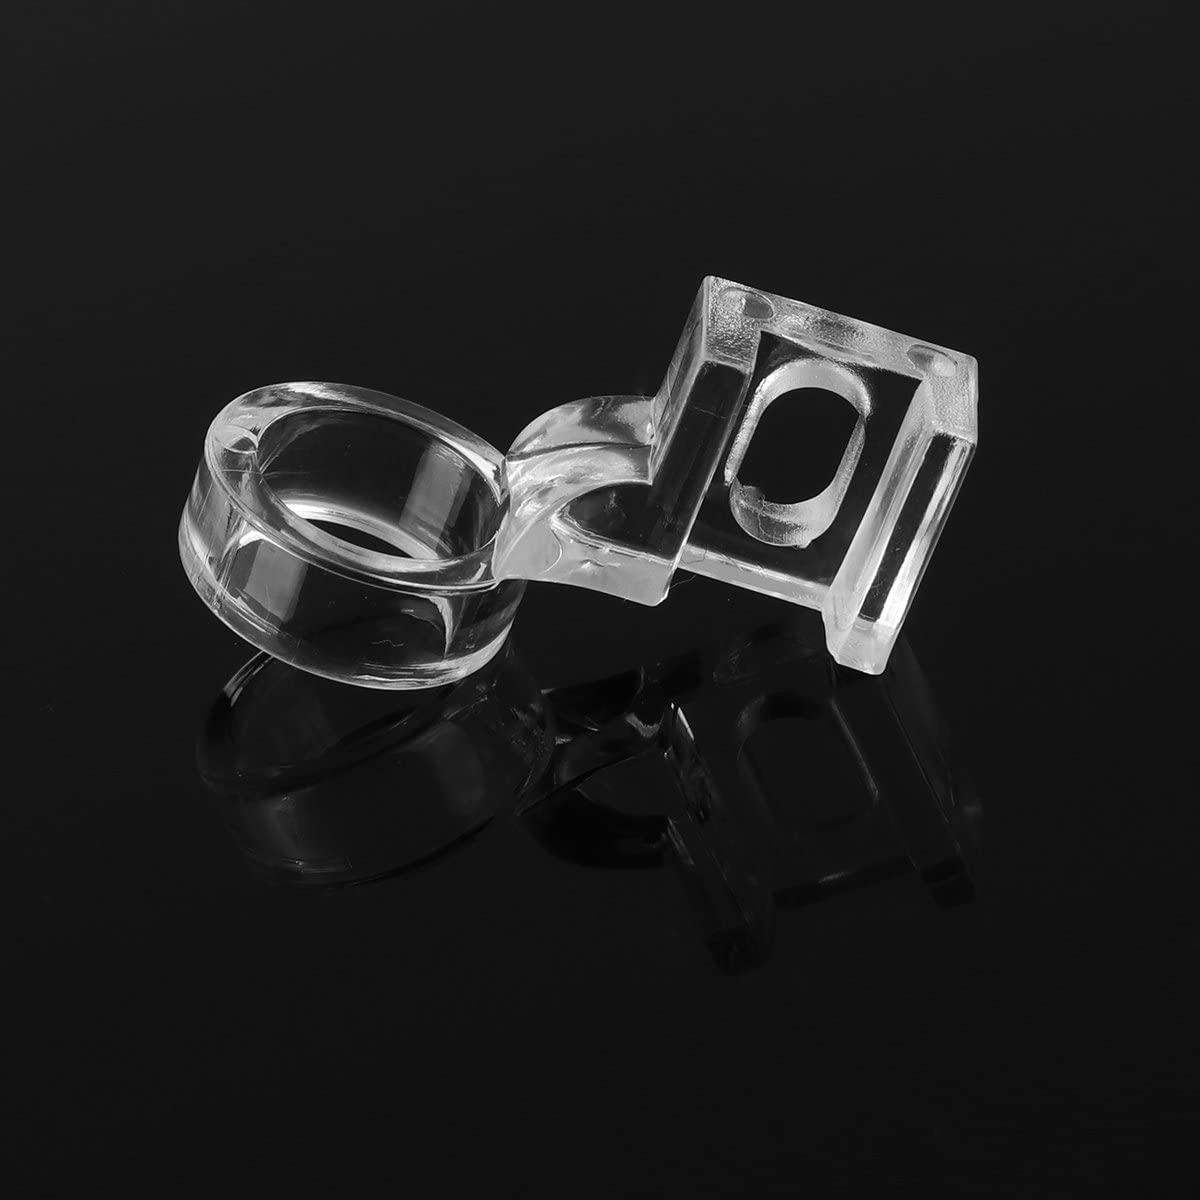 Low Shank Ruler Foot,SONSAN 1//4 Low Shank Ruler Foot Clarity Clear Frame Quilting Sewing Presser Foot